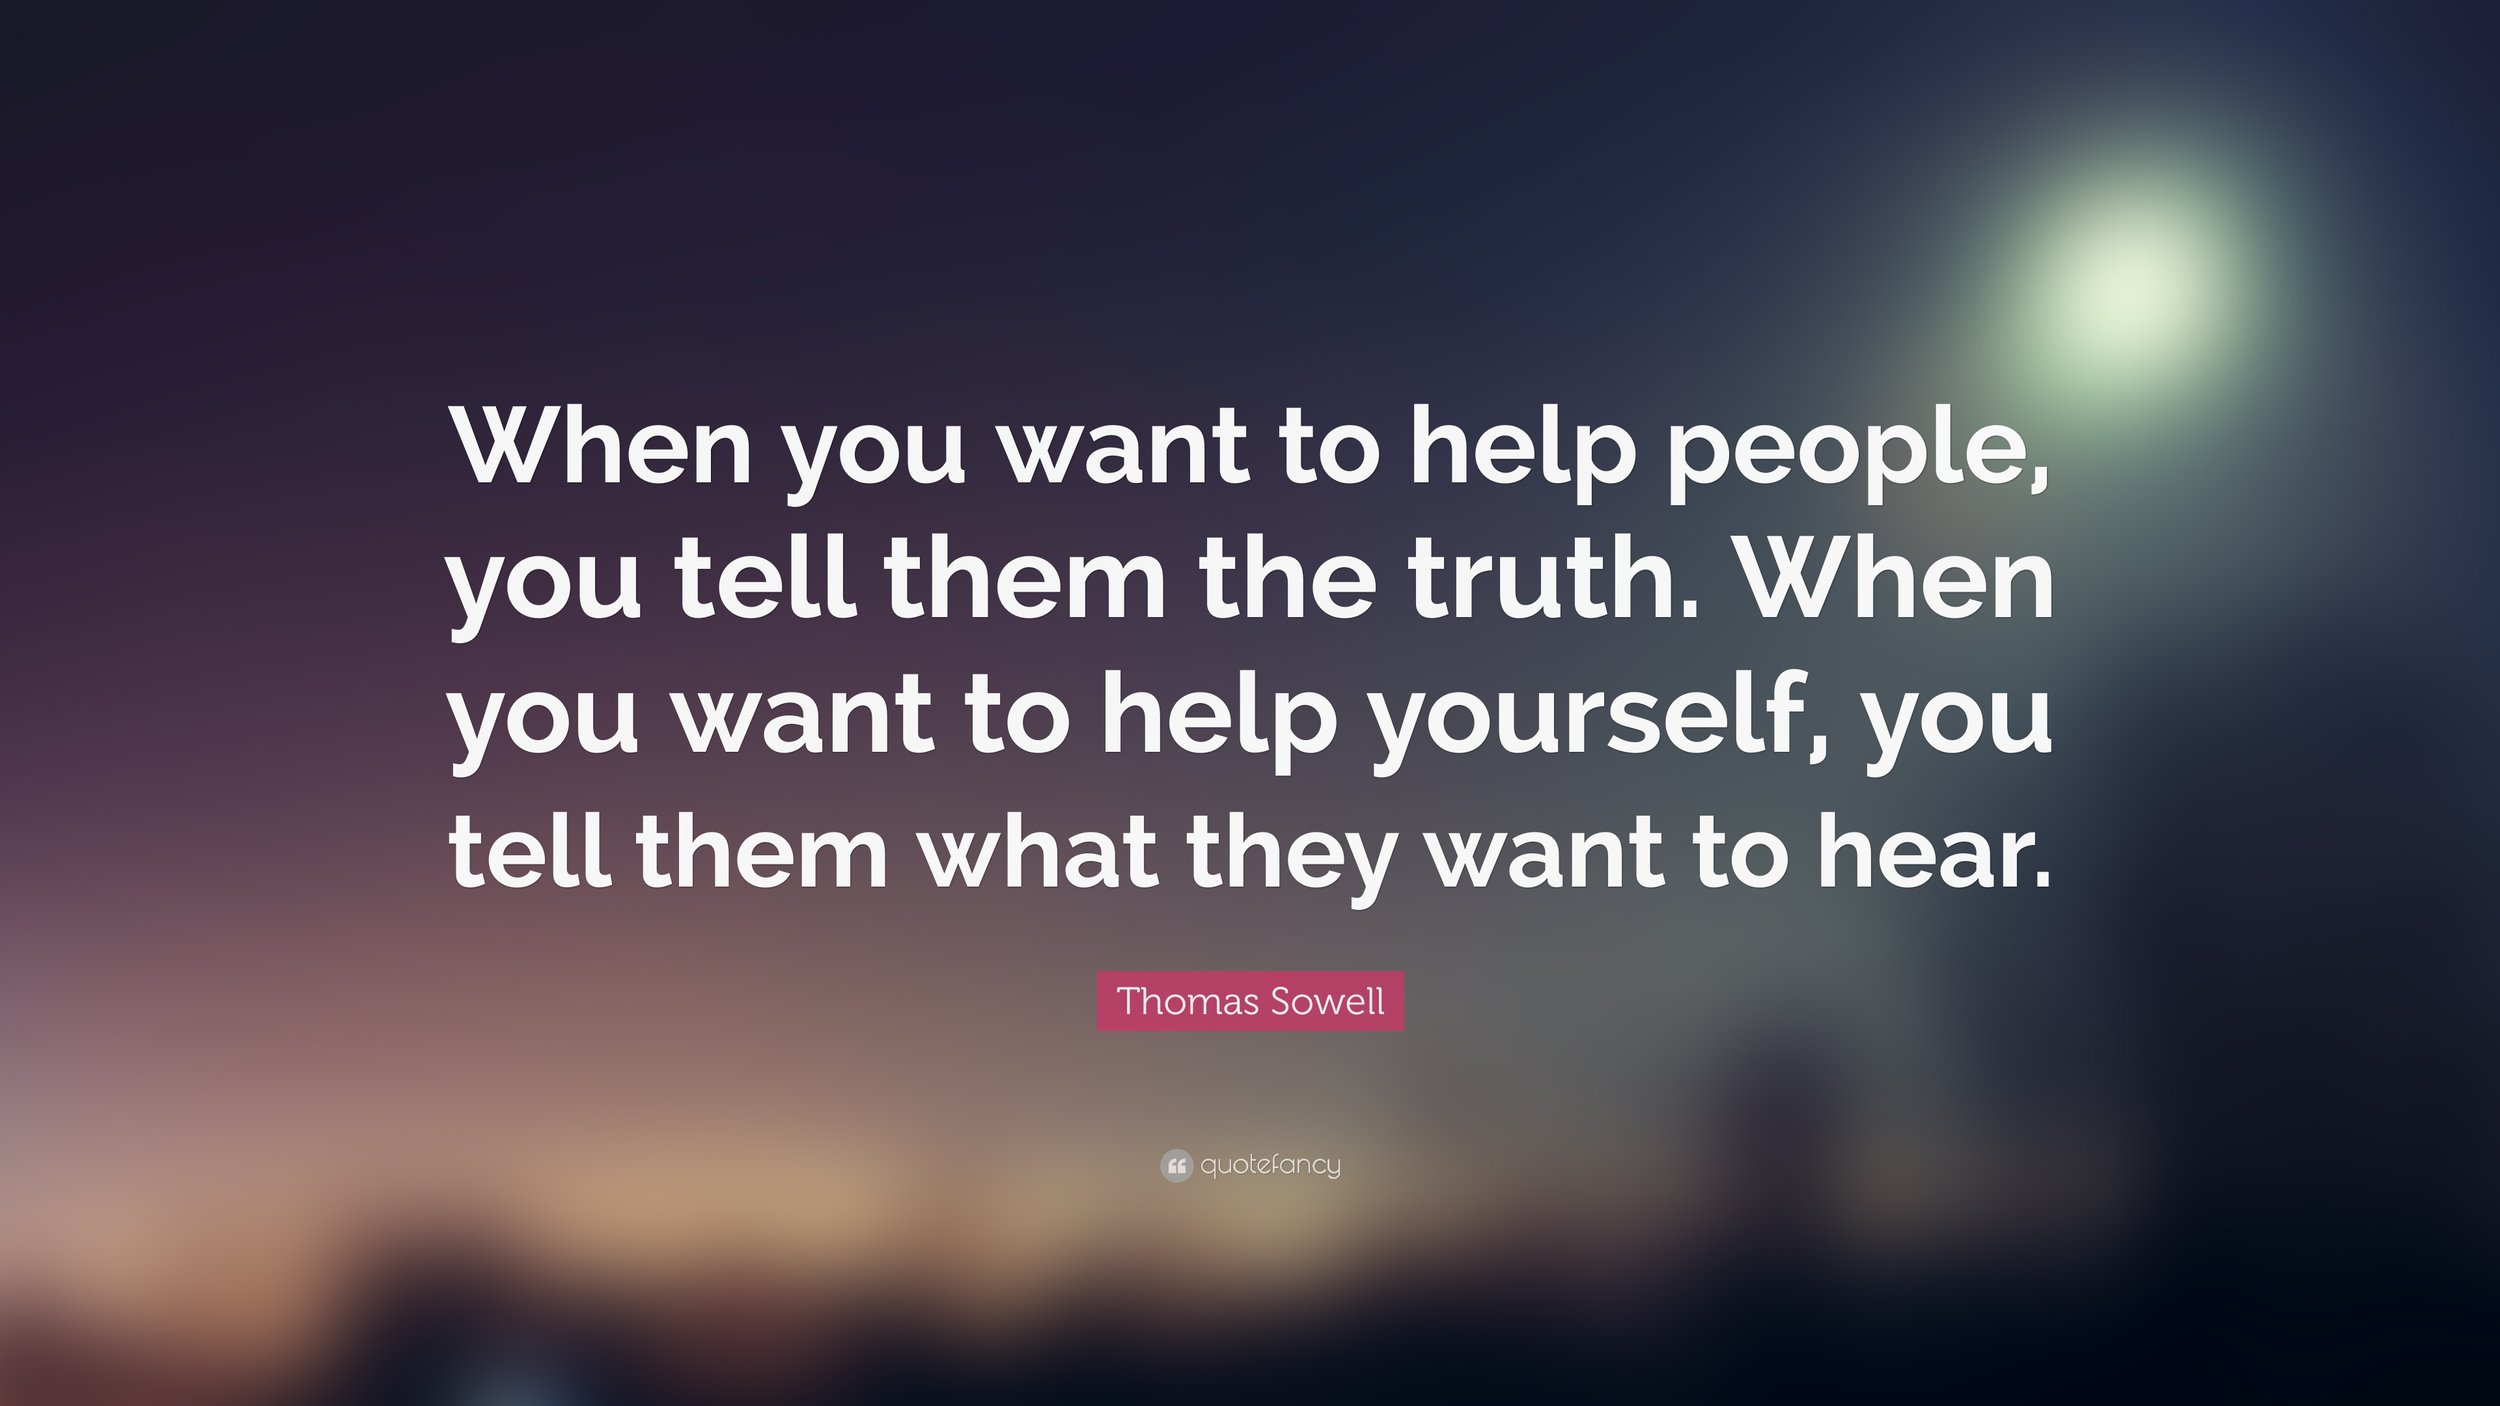 431090-Thomas-Sowell-Quote-When-you-want-to-help-people-you-tell-them-the.jpg